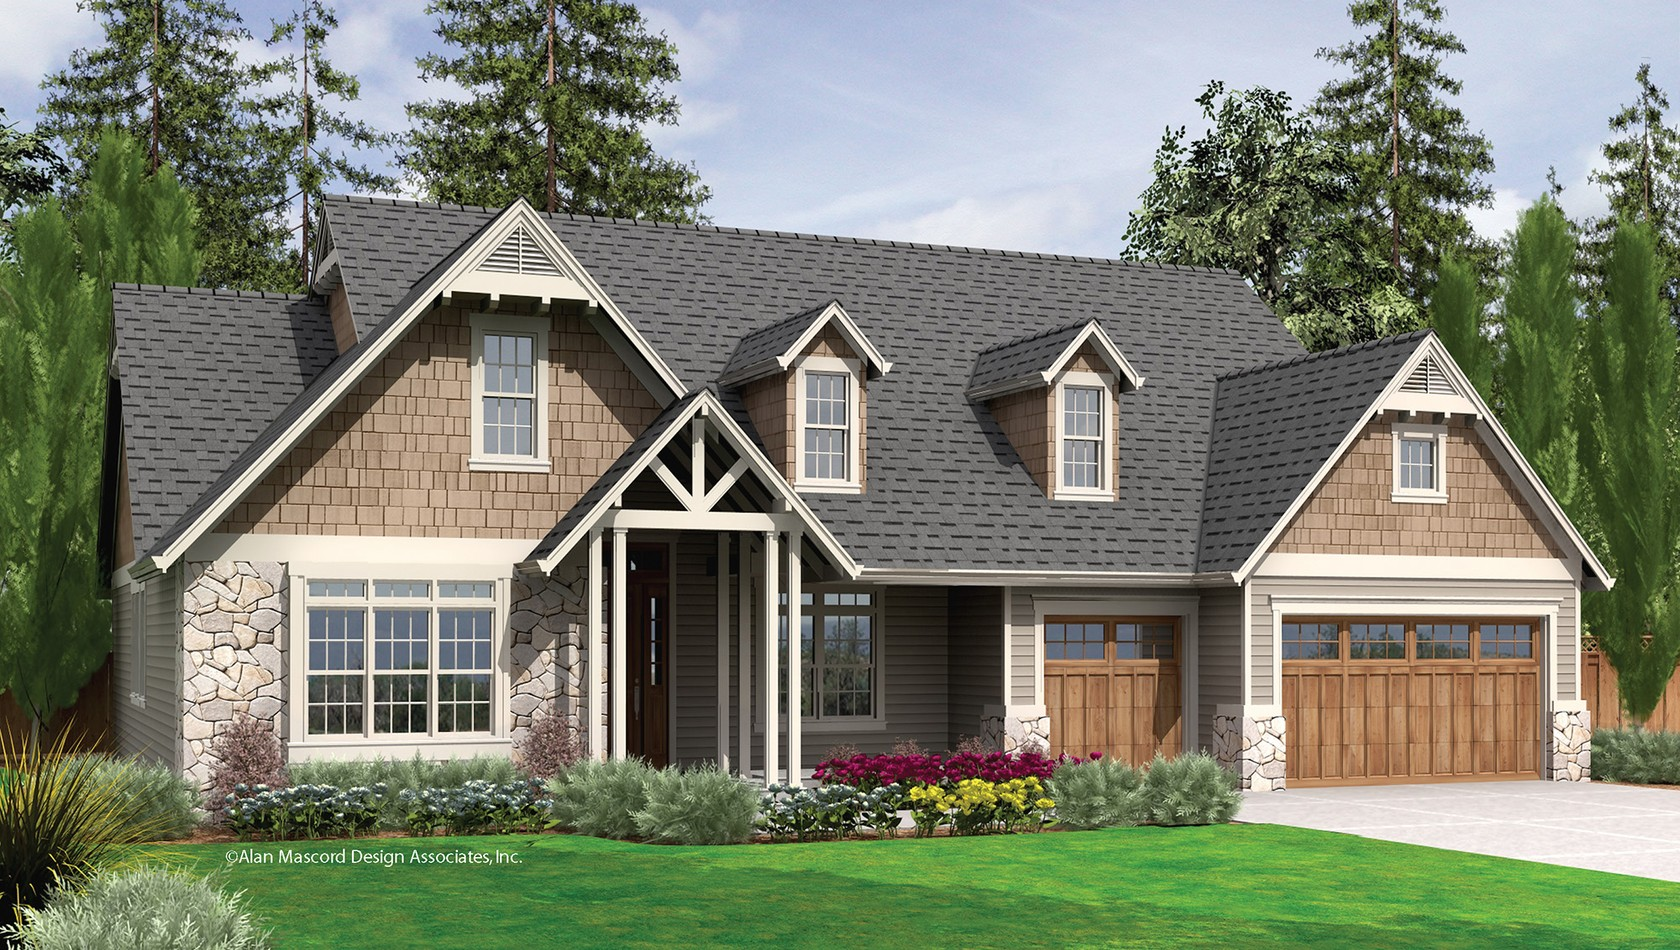 Main image for house plan 22157: The Alton